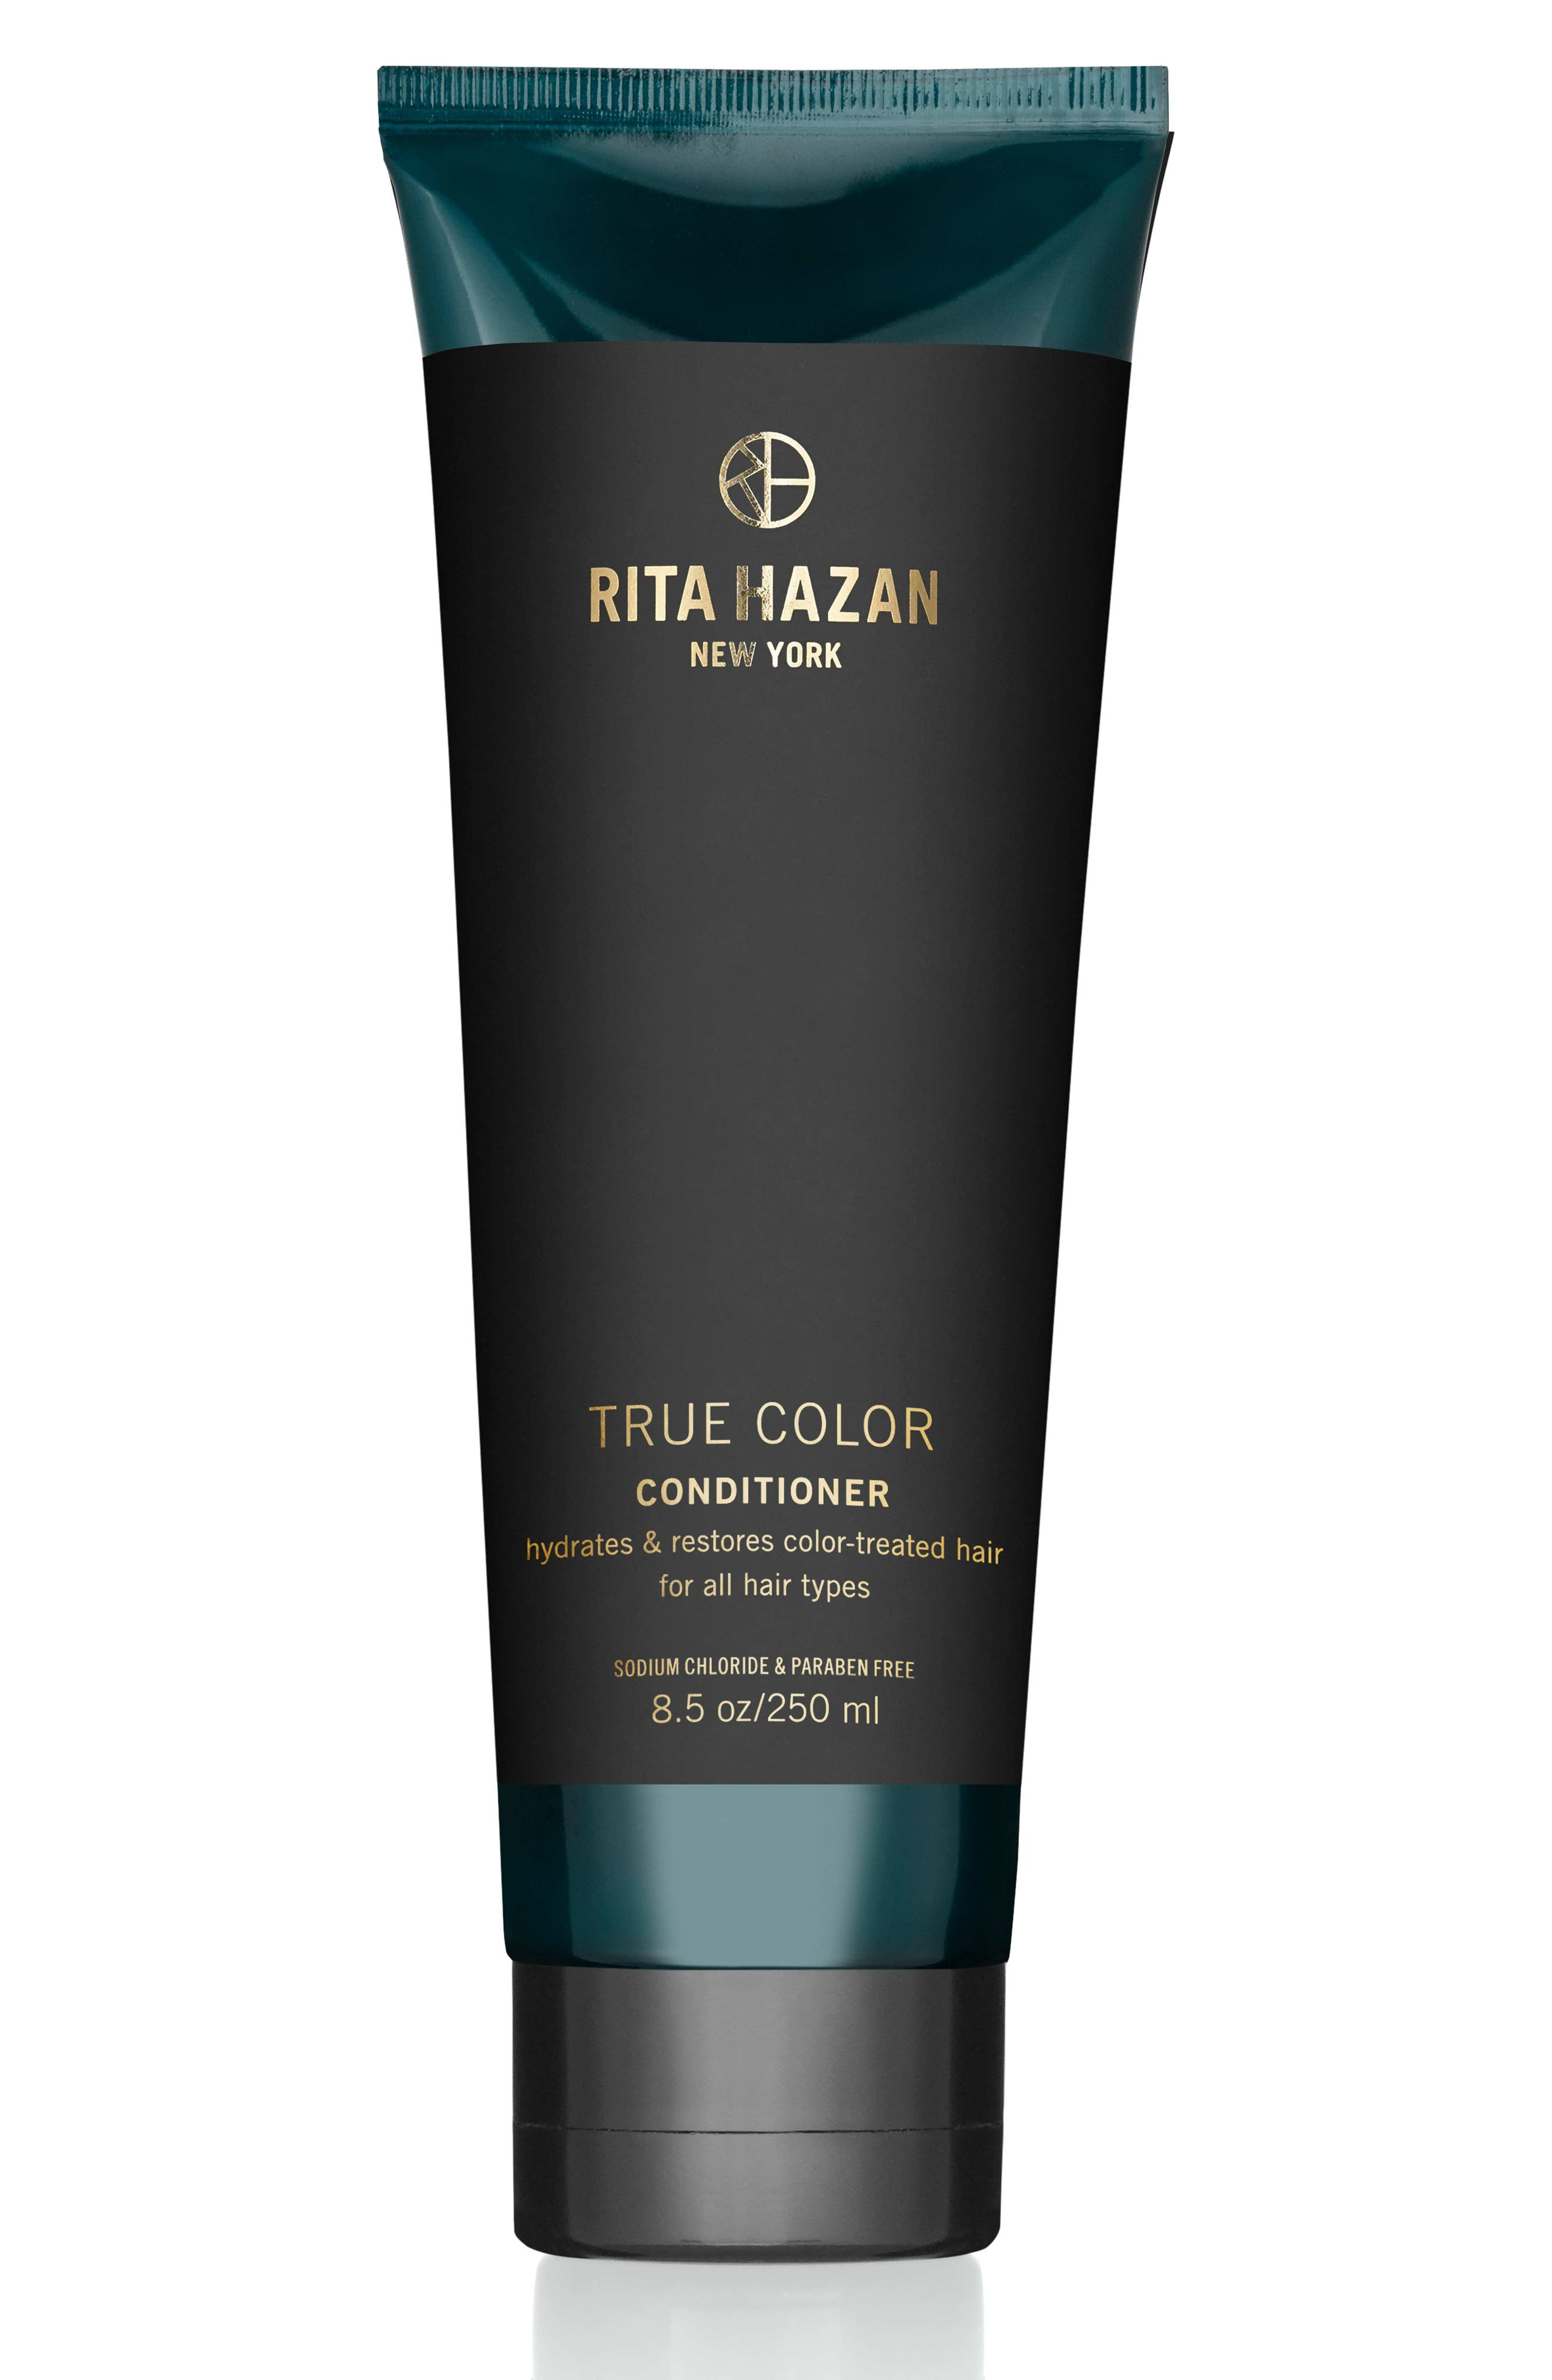 Main Image - RITA HAZAN NEW YORK 'True Color' Conditioner